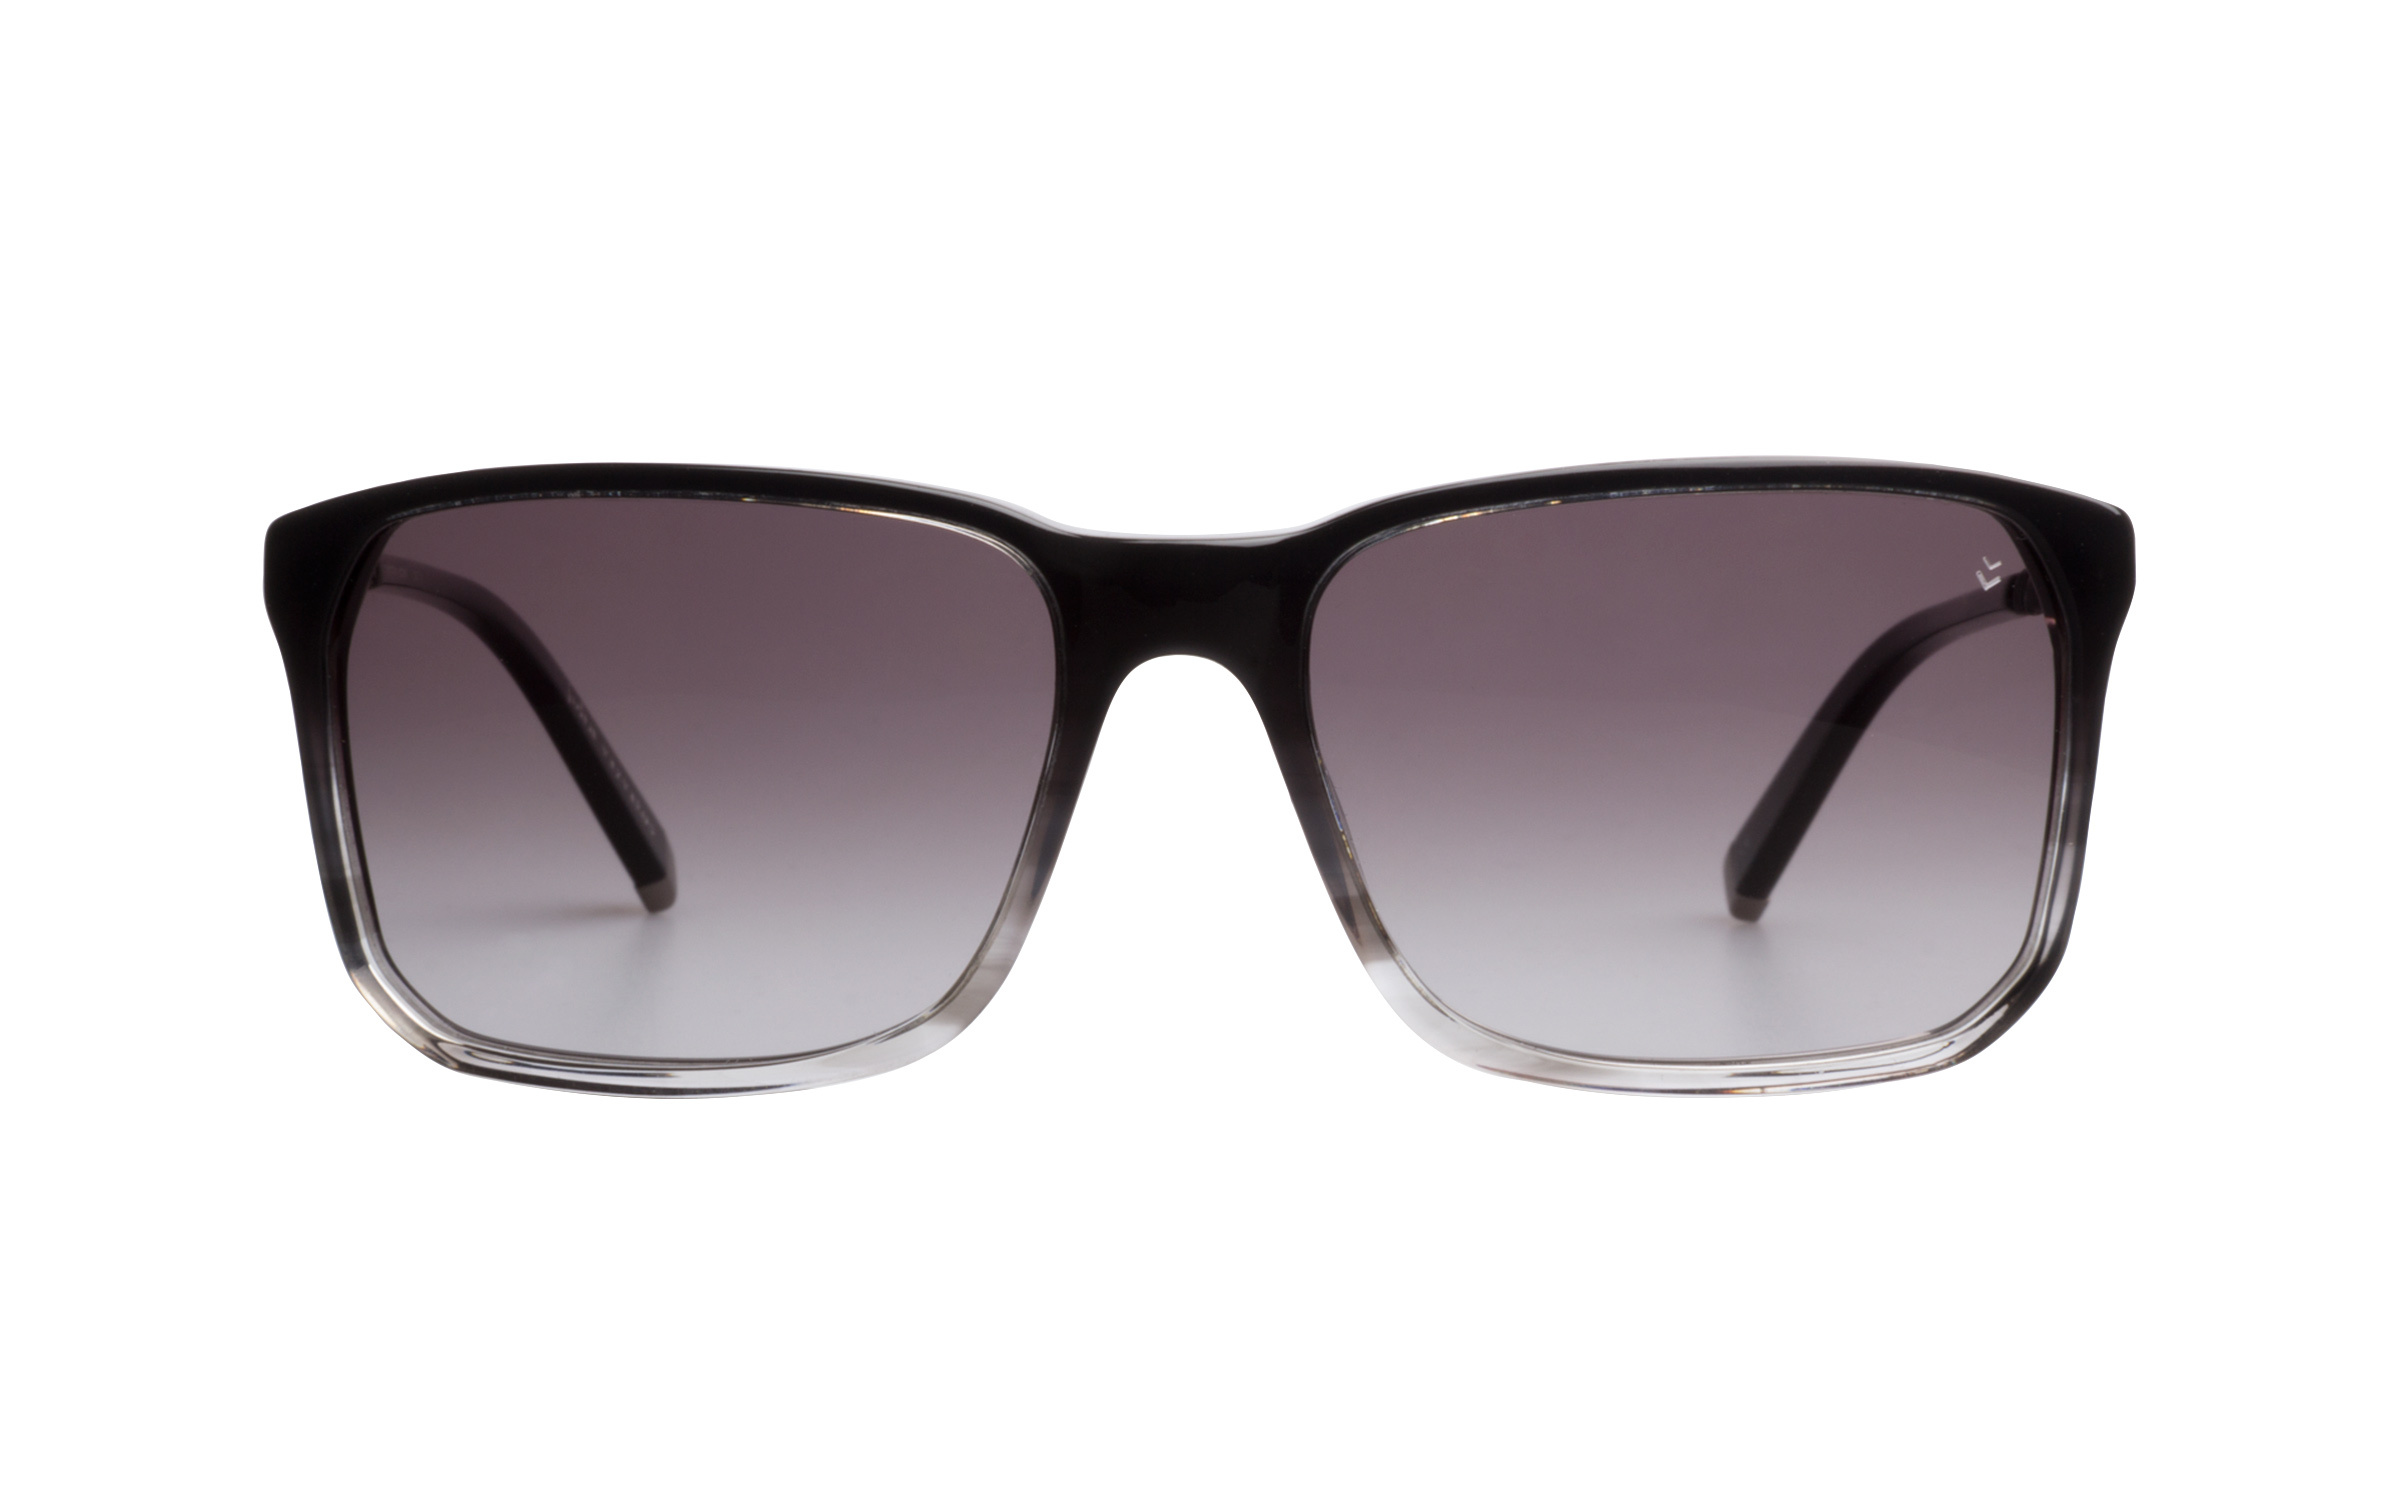 John_Varvatos_Sunglasses_Vintage_Black_AcetateMetal_Online_Coastal